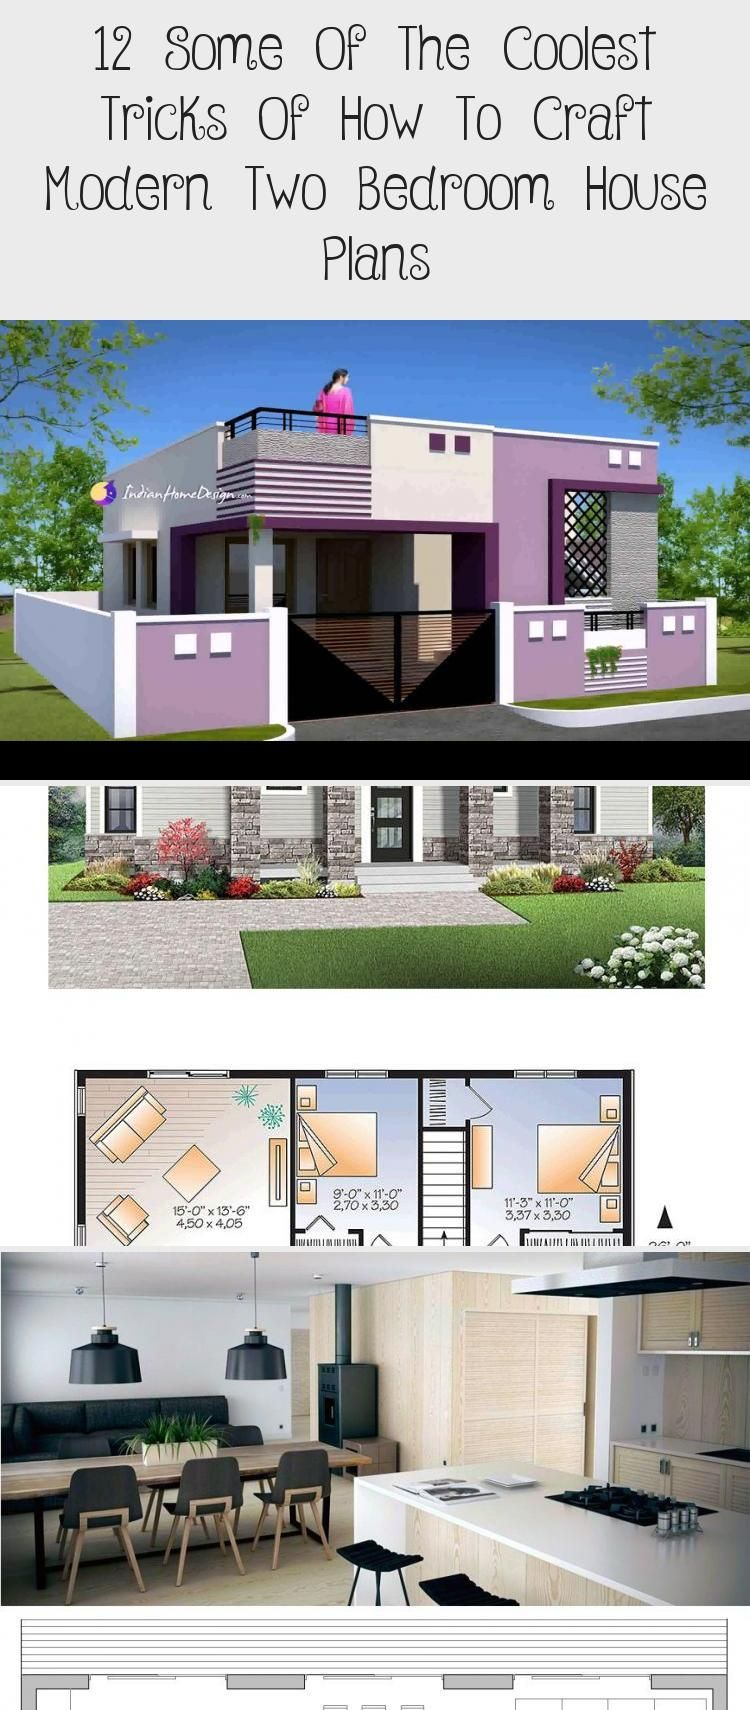 12 Some Of The Coolest Tricks Of How To Craft Modern Two Bedroom House Plans Smallhouseplanswithpool Smallhous In 2020 Two Bedroom House House Plans Pool House Plans